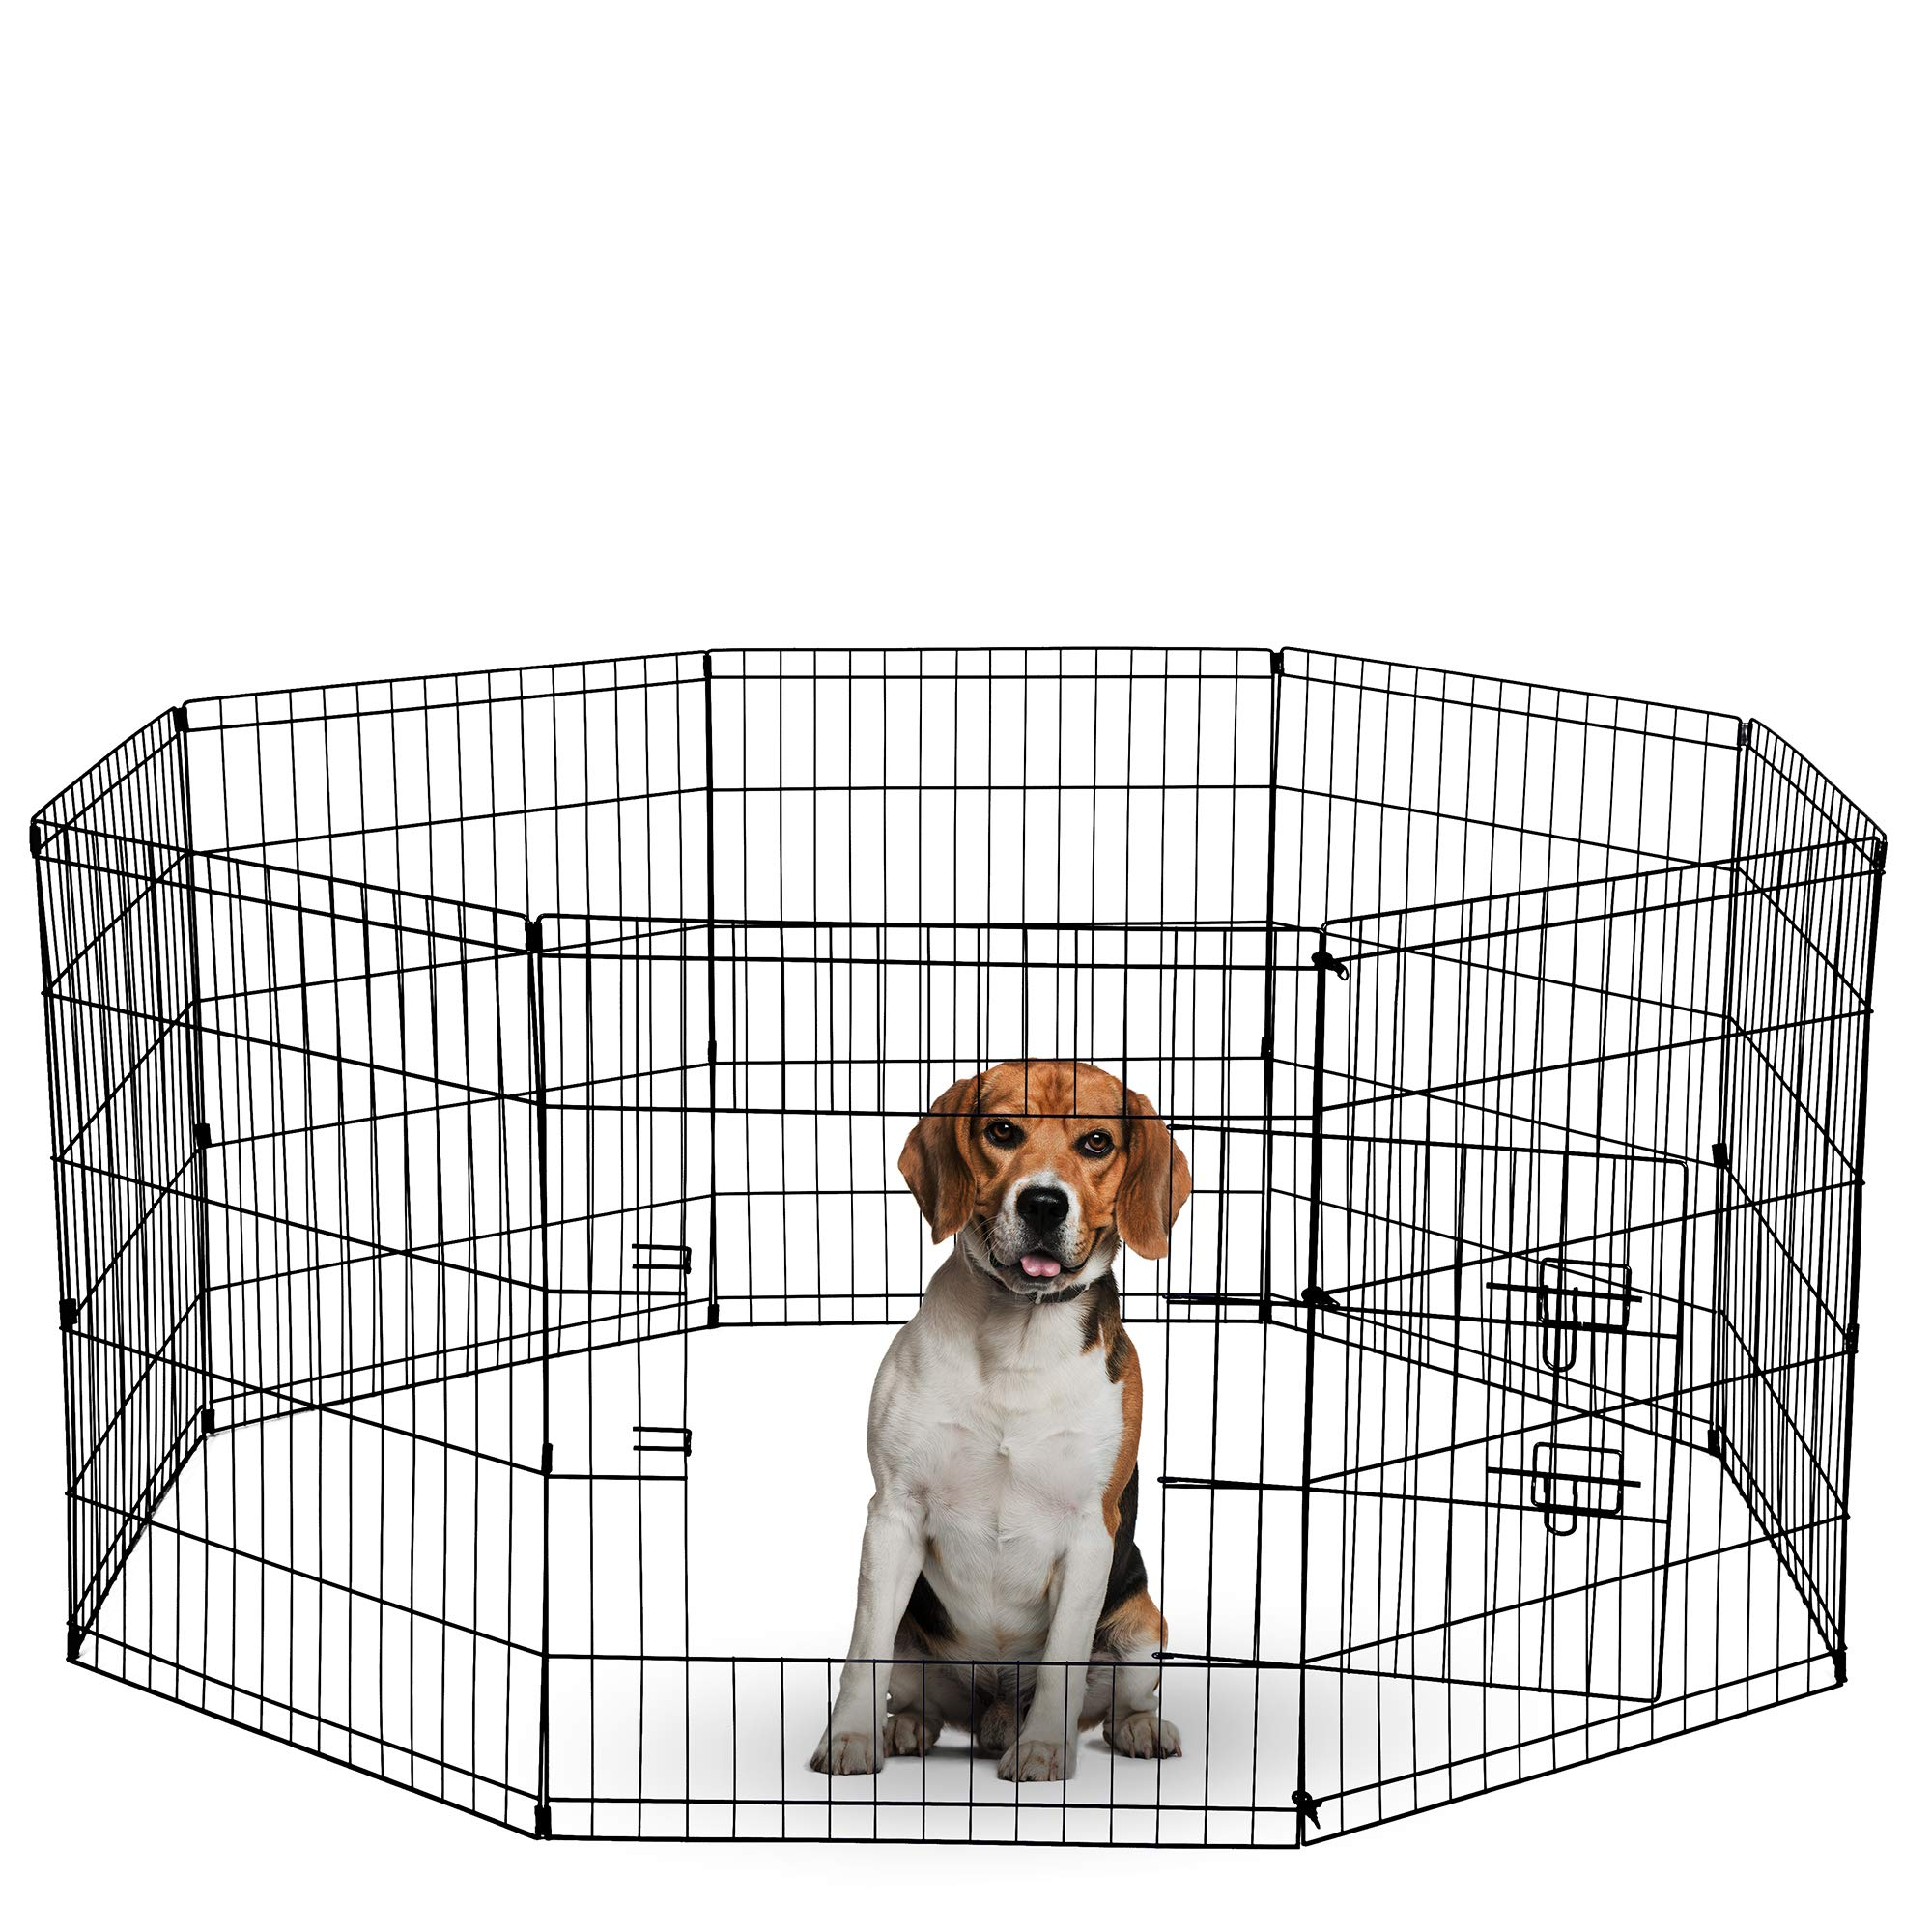 Dog Exercise Pen Pet Playpens for XX-Large Dogs - Puppy Playpen Outdoor Back or Front Yard Fence Cage Fencing Doggie Rabbit Cats Playpens Outside Fences with Door - 48 Inch Metal Wire 8-Panel Foldable by Paws & Pals